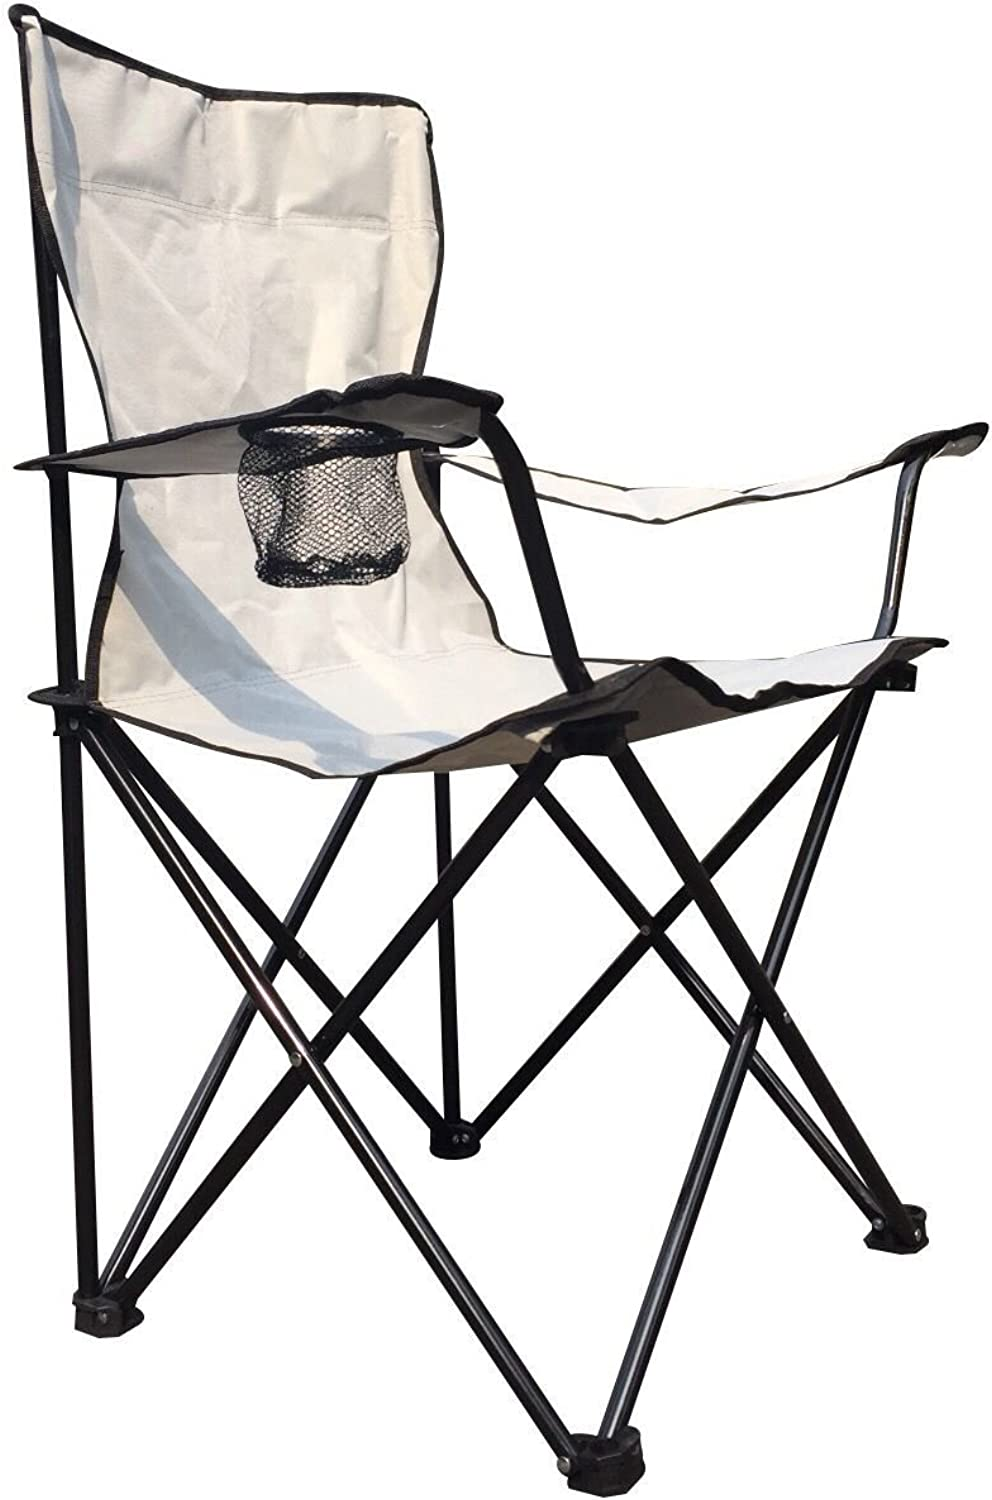 Grit Folding Premium Quad Chair with Carry Bag for Your Camping, Fishing, Enjoy Your Leisure Time. (Grey)